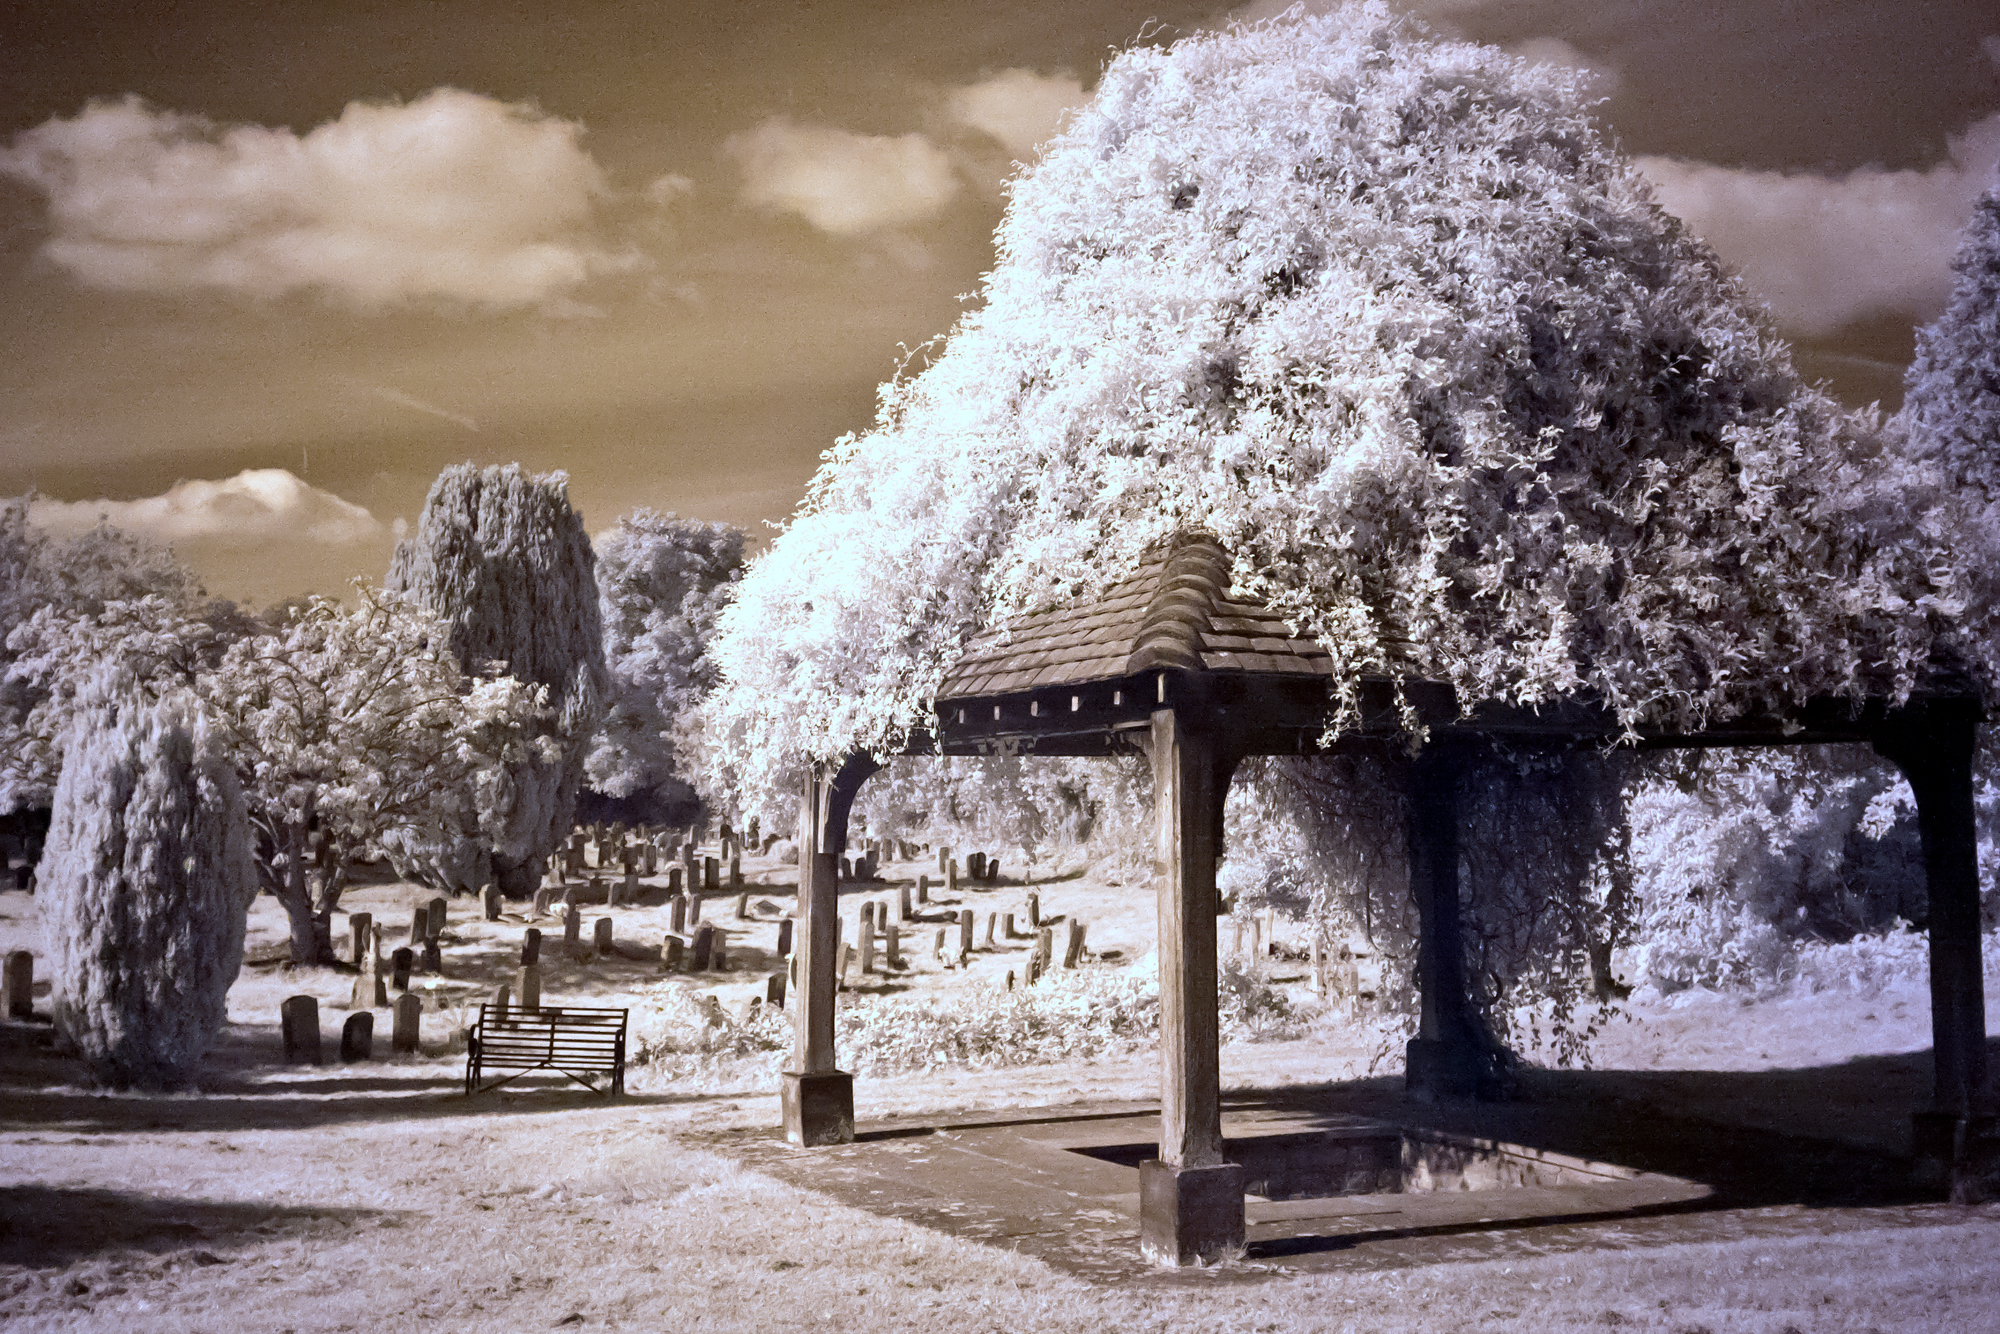 St Chads well-infrared-web.jpg